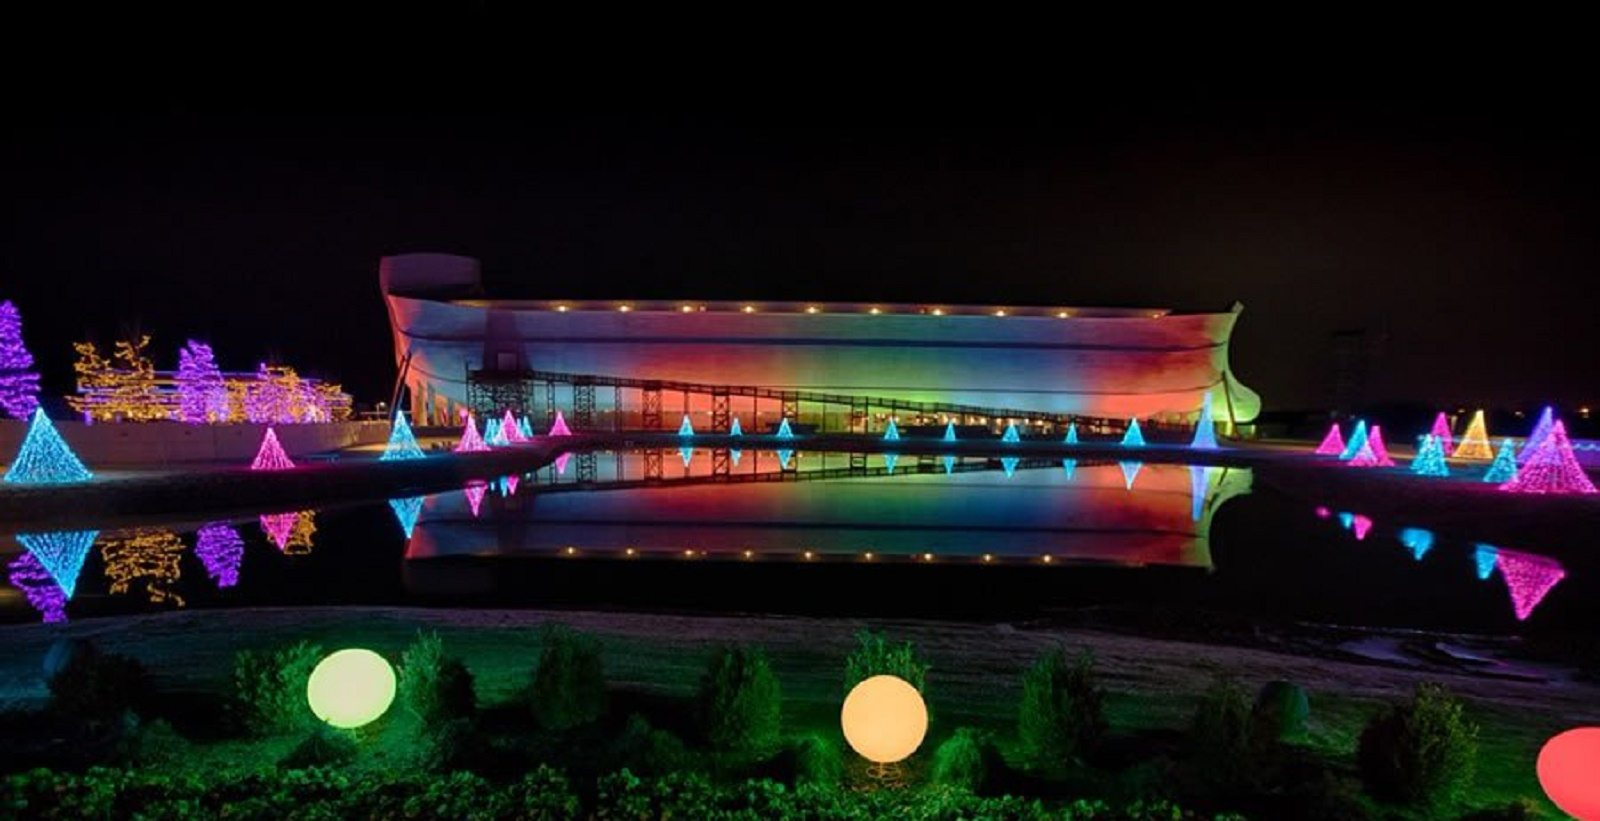 Noah's Ark Park lit up with Rainbow lights